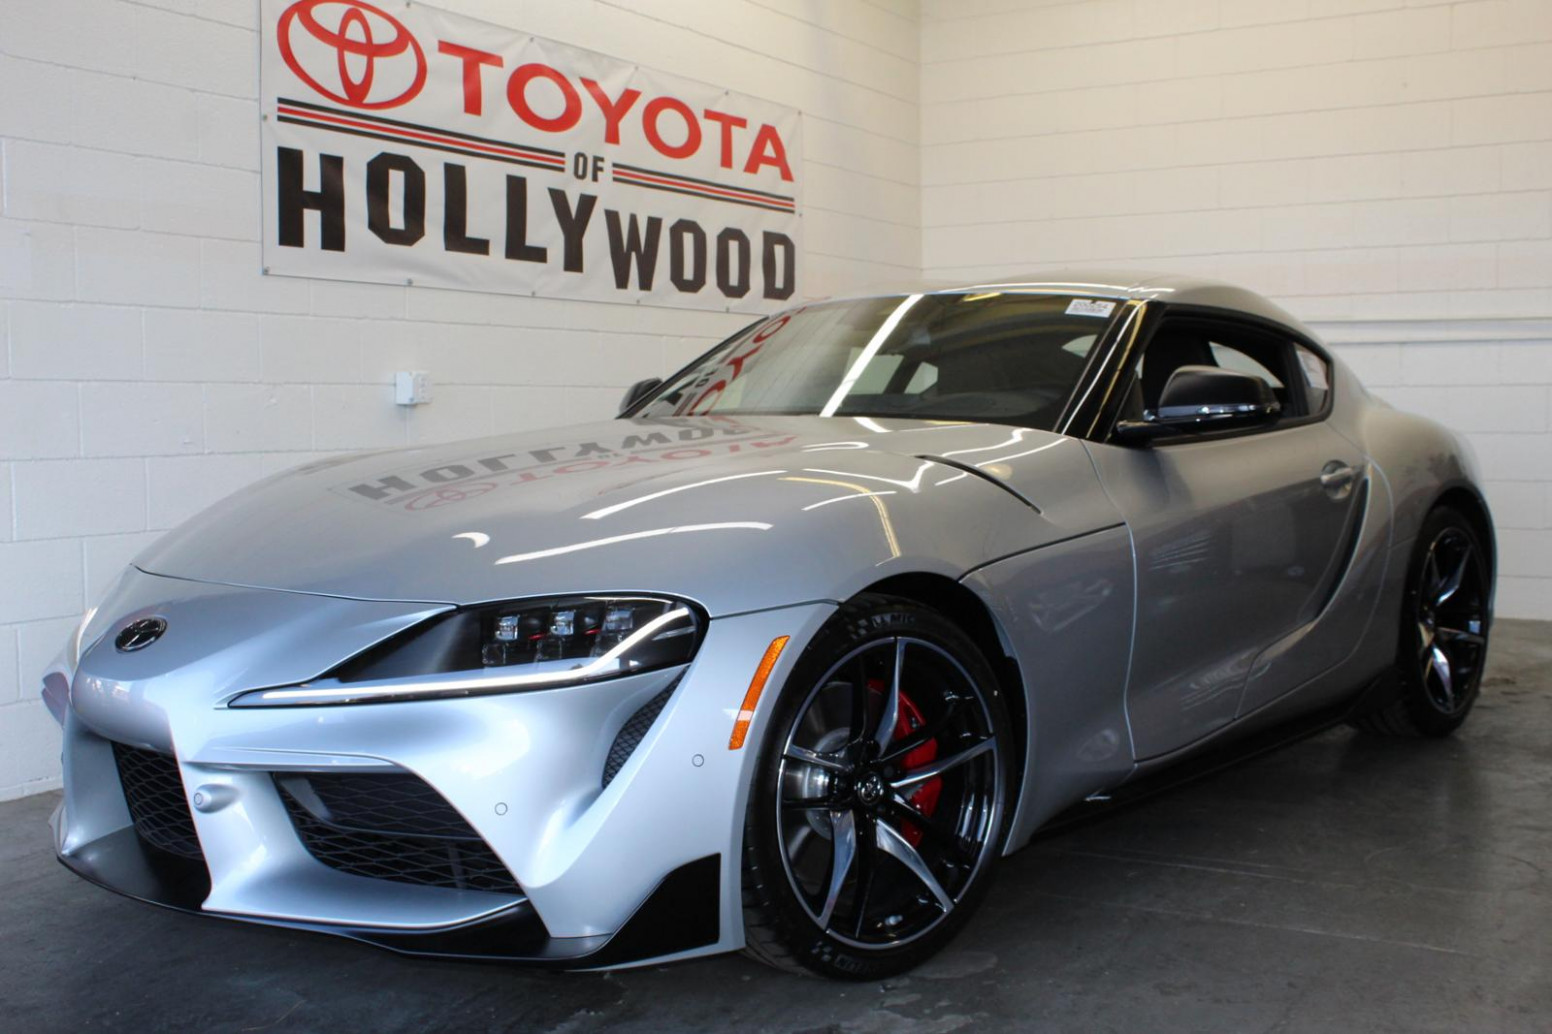 New Toyota GR Supra for Sale in Hollywood, CA - 2020 toyota supra for sale